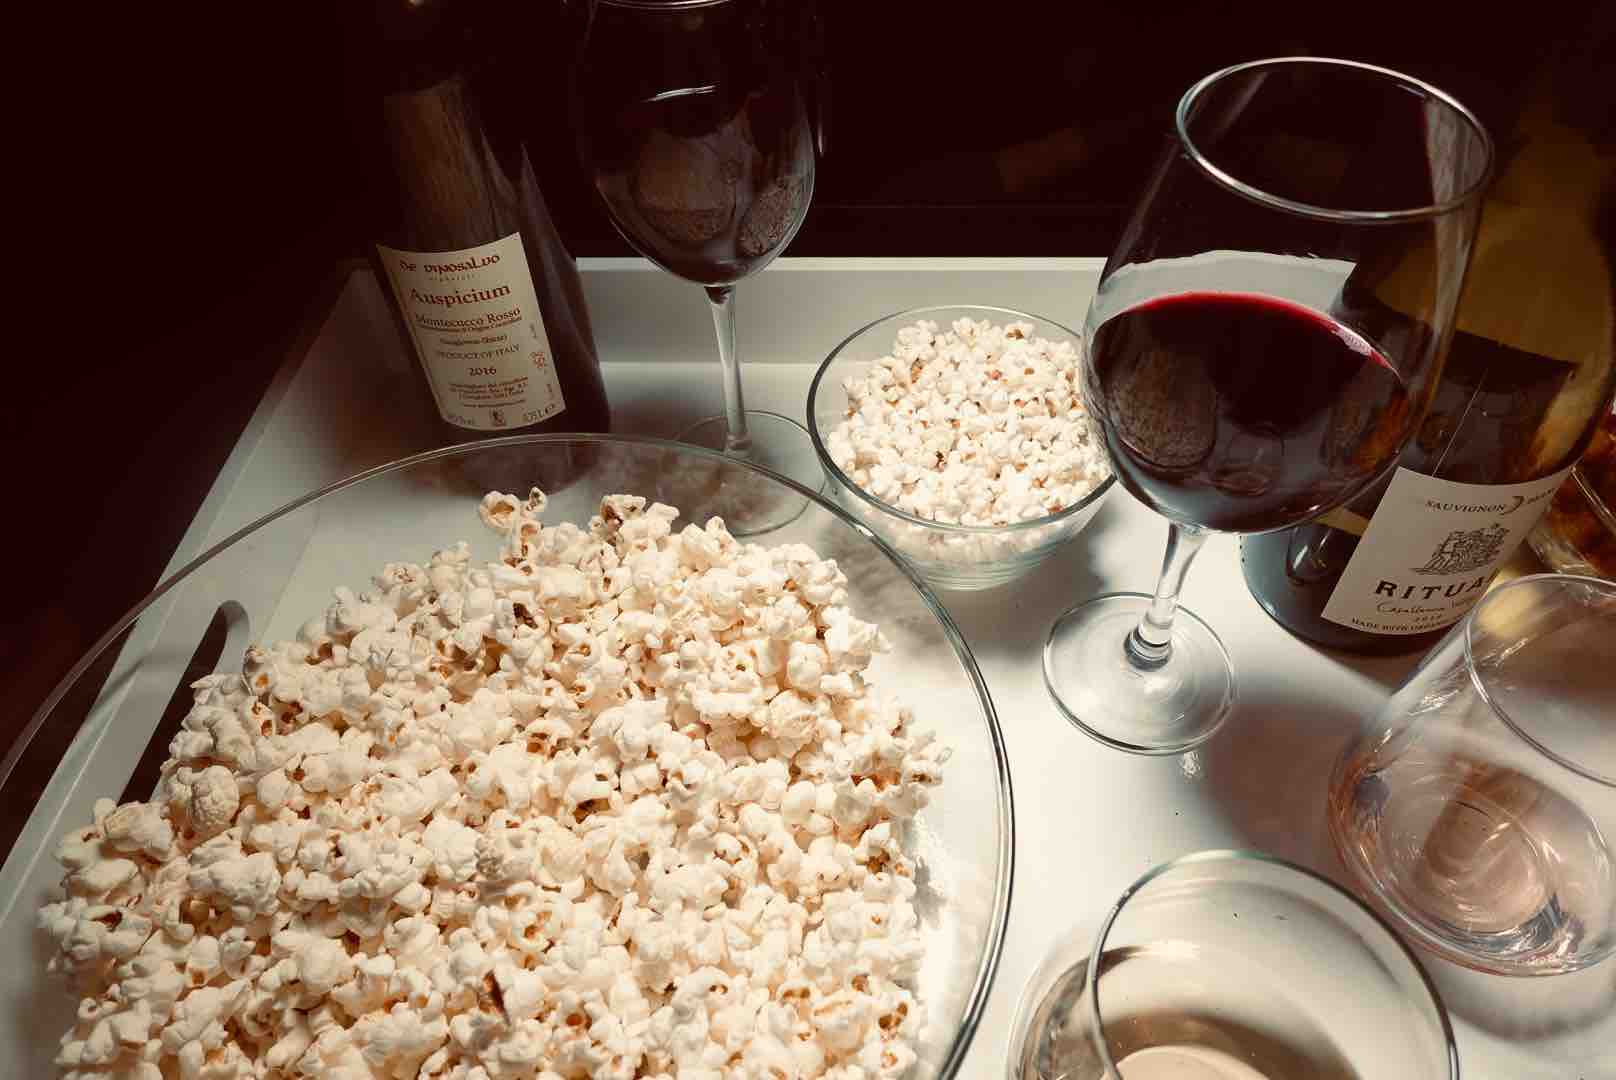 Red Wine Are The Best Wines For Popcorn Pairings For Your Next Binge-Watching Night